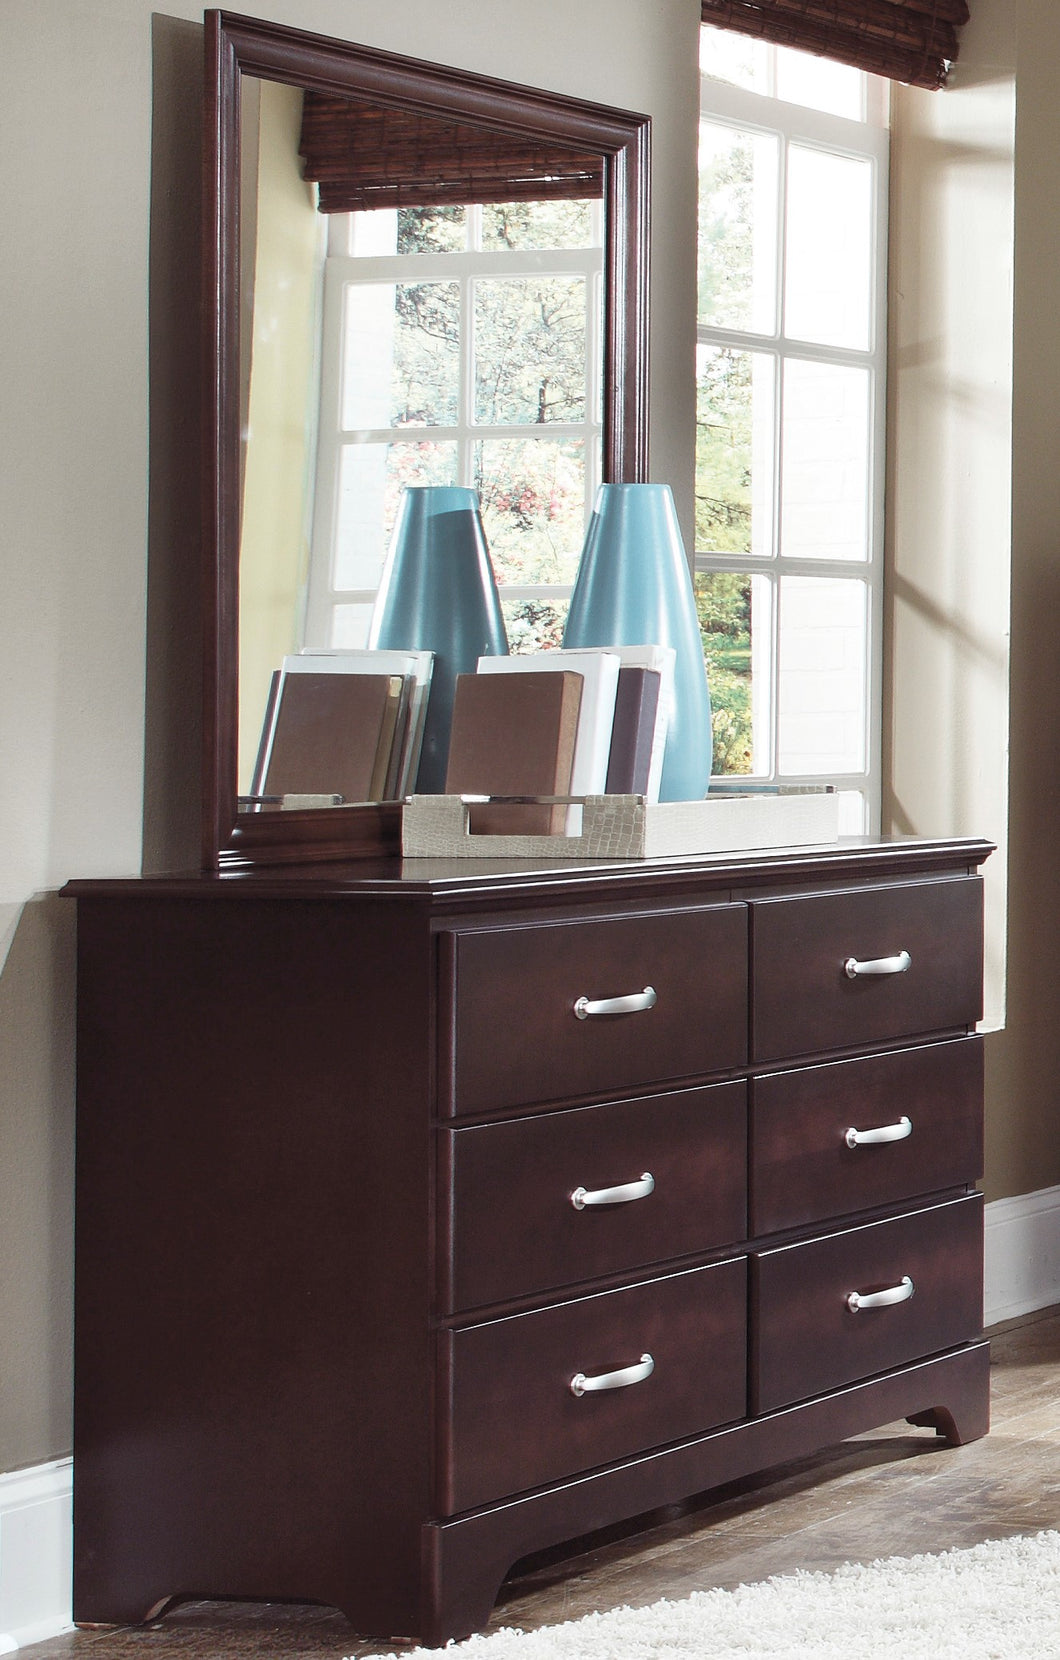 Signature Double Dresser | Made in the USA